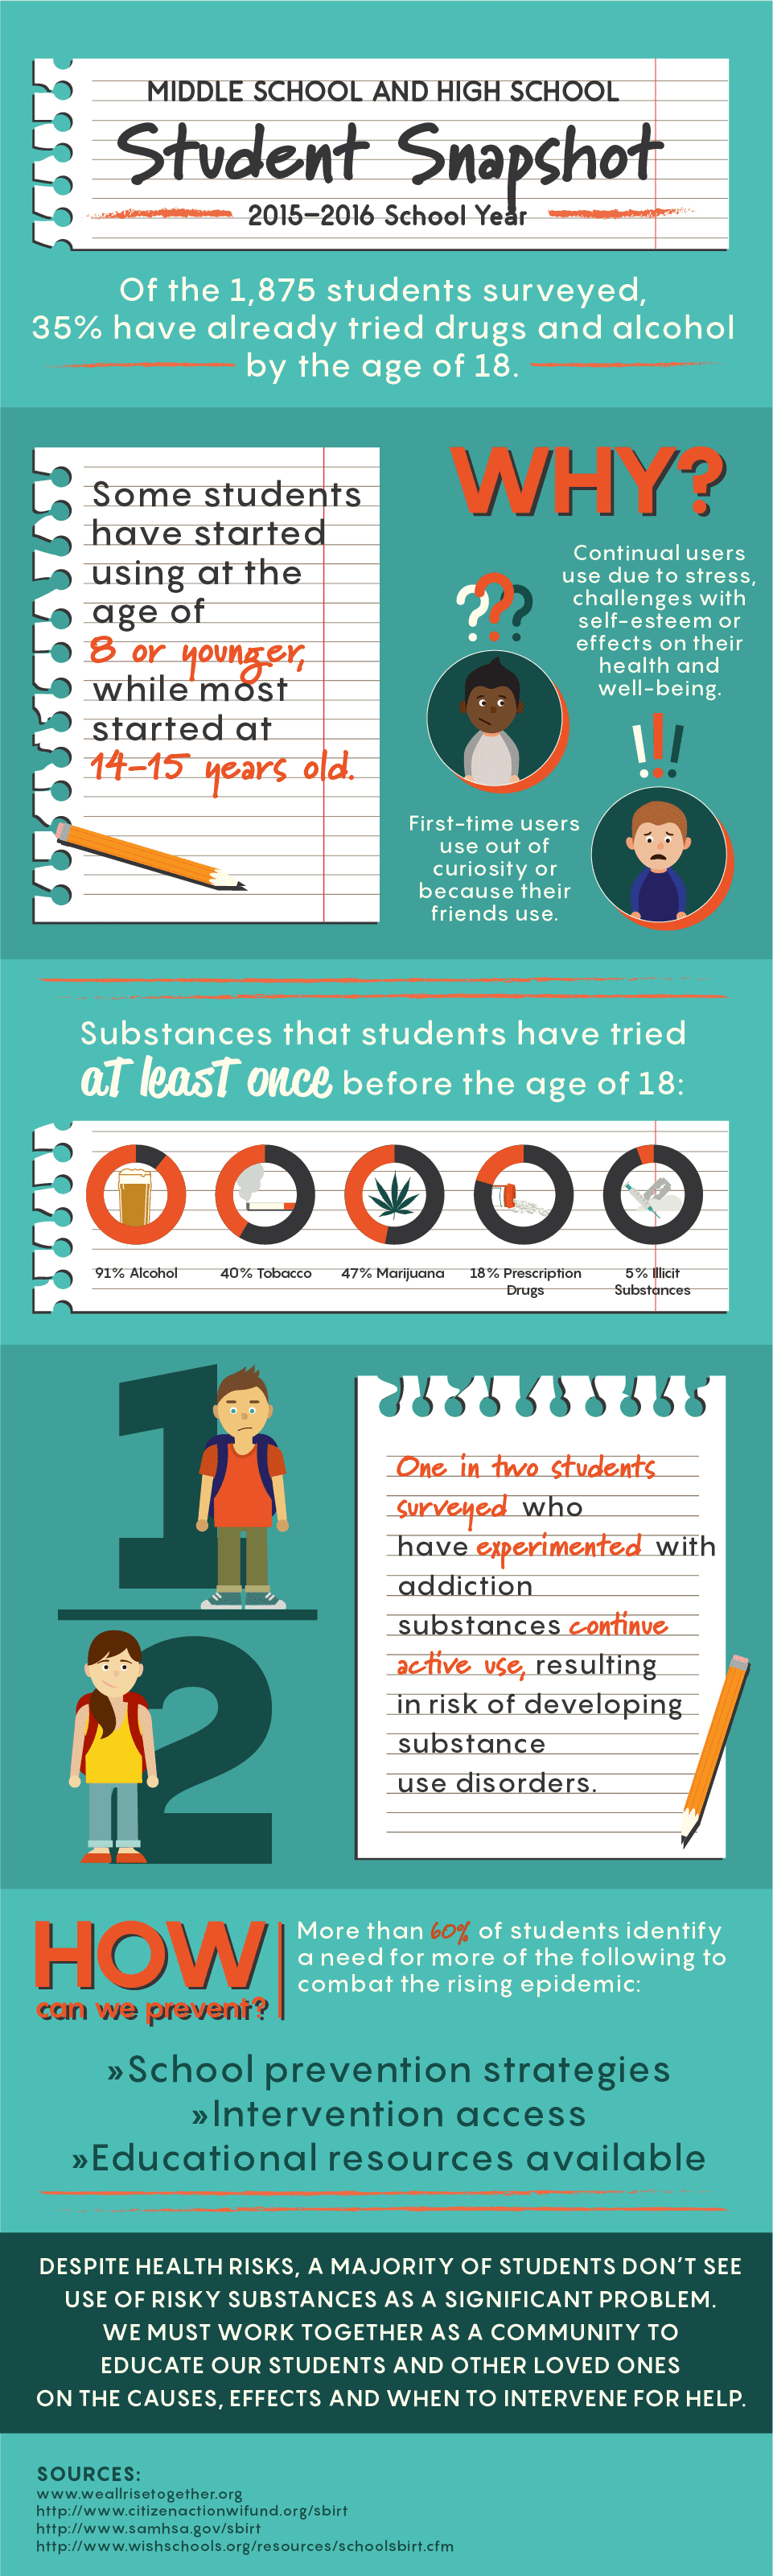 Teens substance abuse is caused by peer pressure. Through alcohol abuse and marijuana use these are the stats that teens have admitted to using at least once.